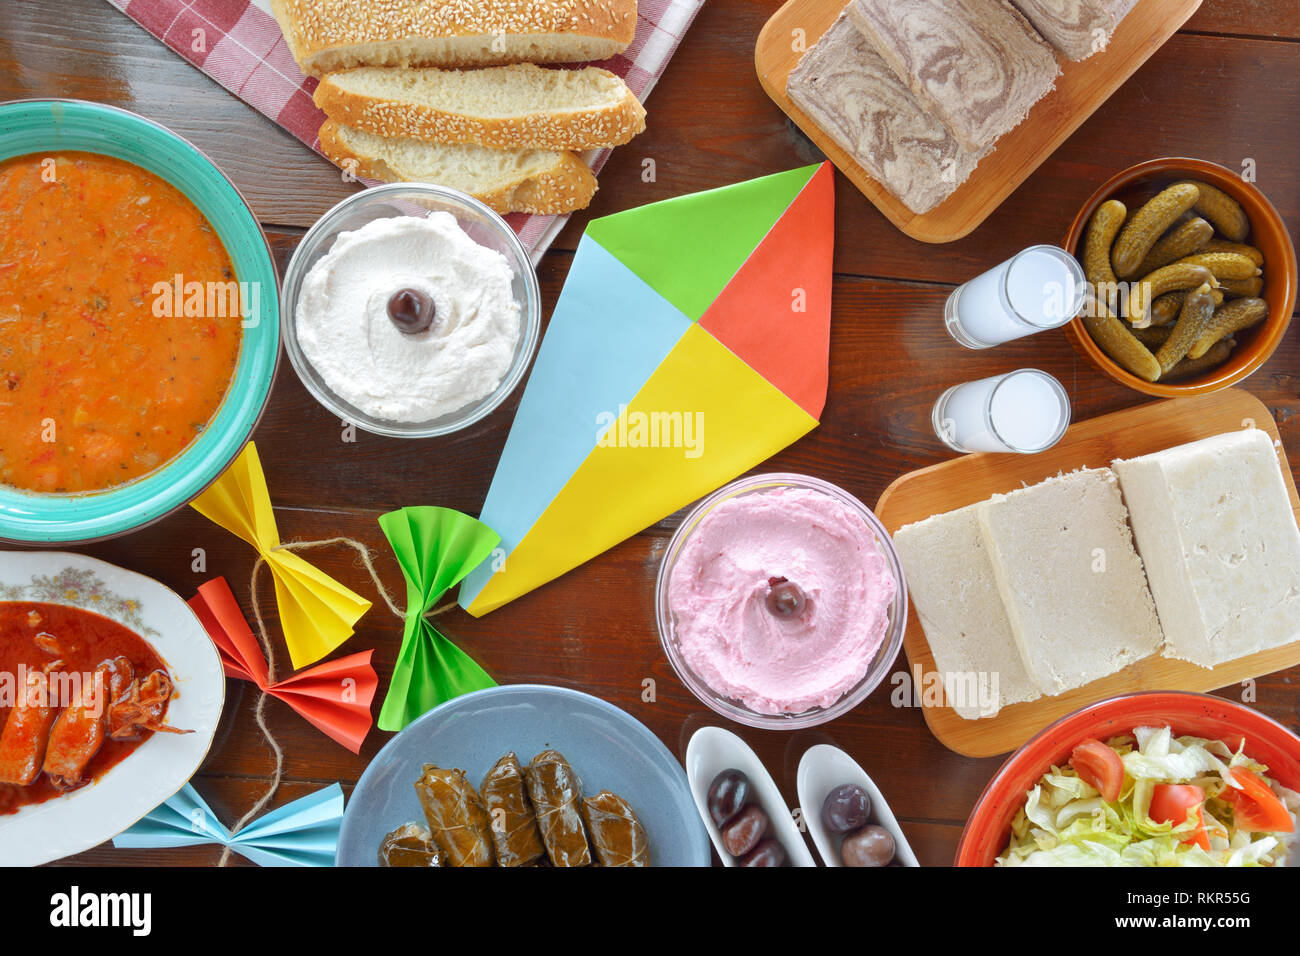 Concept for Clean Monday with fasting food and a kite - Stock Image